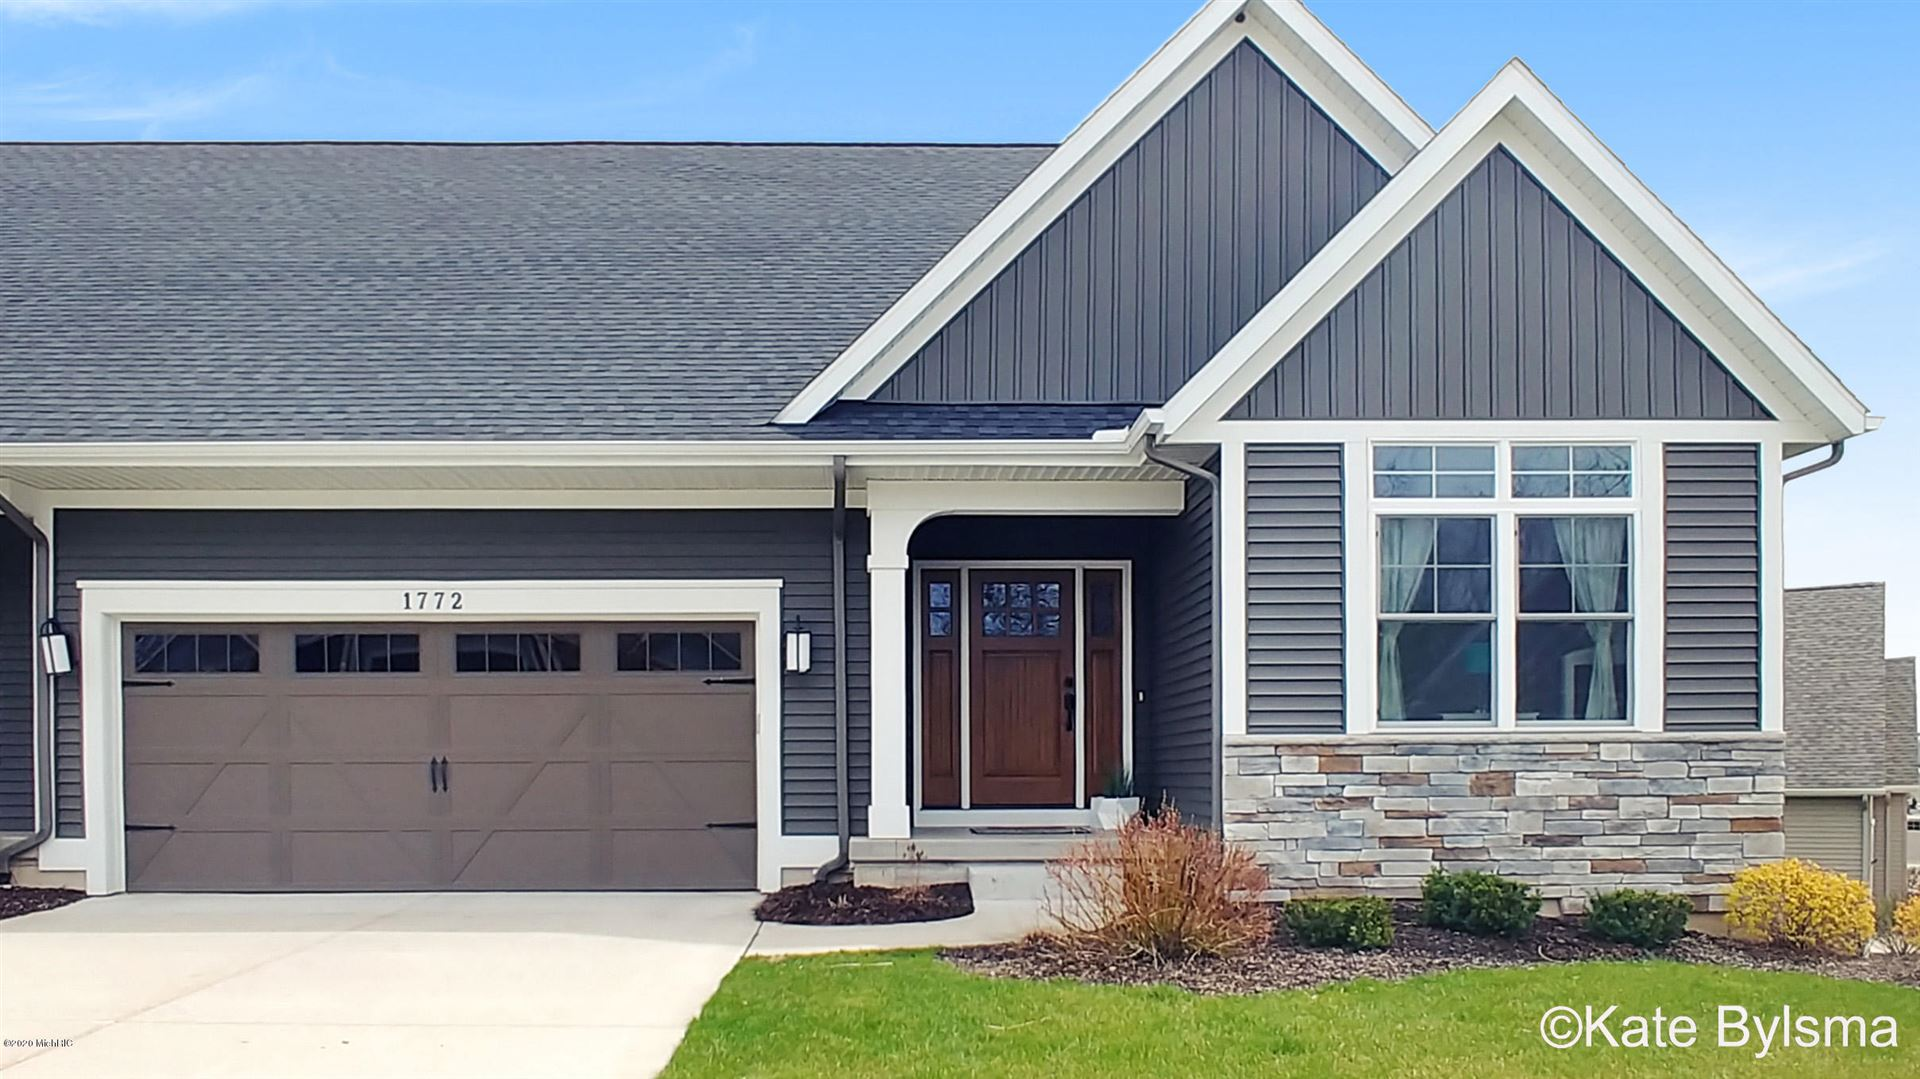 1772 North Brandon Ridge, Walker, MI 49544 - MLS#: 20013758